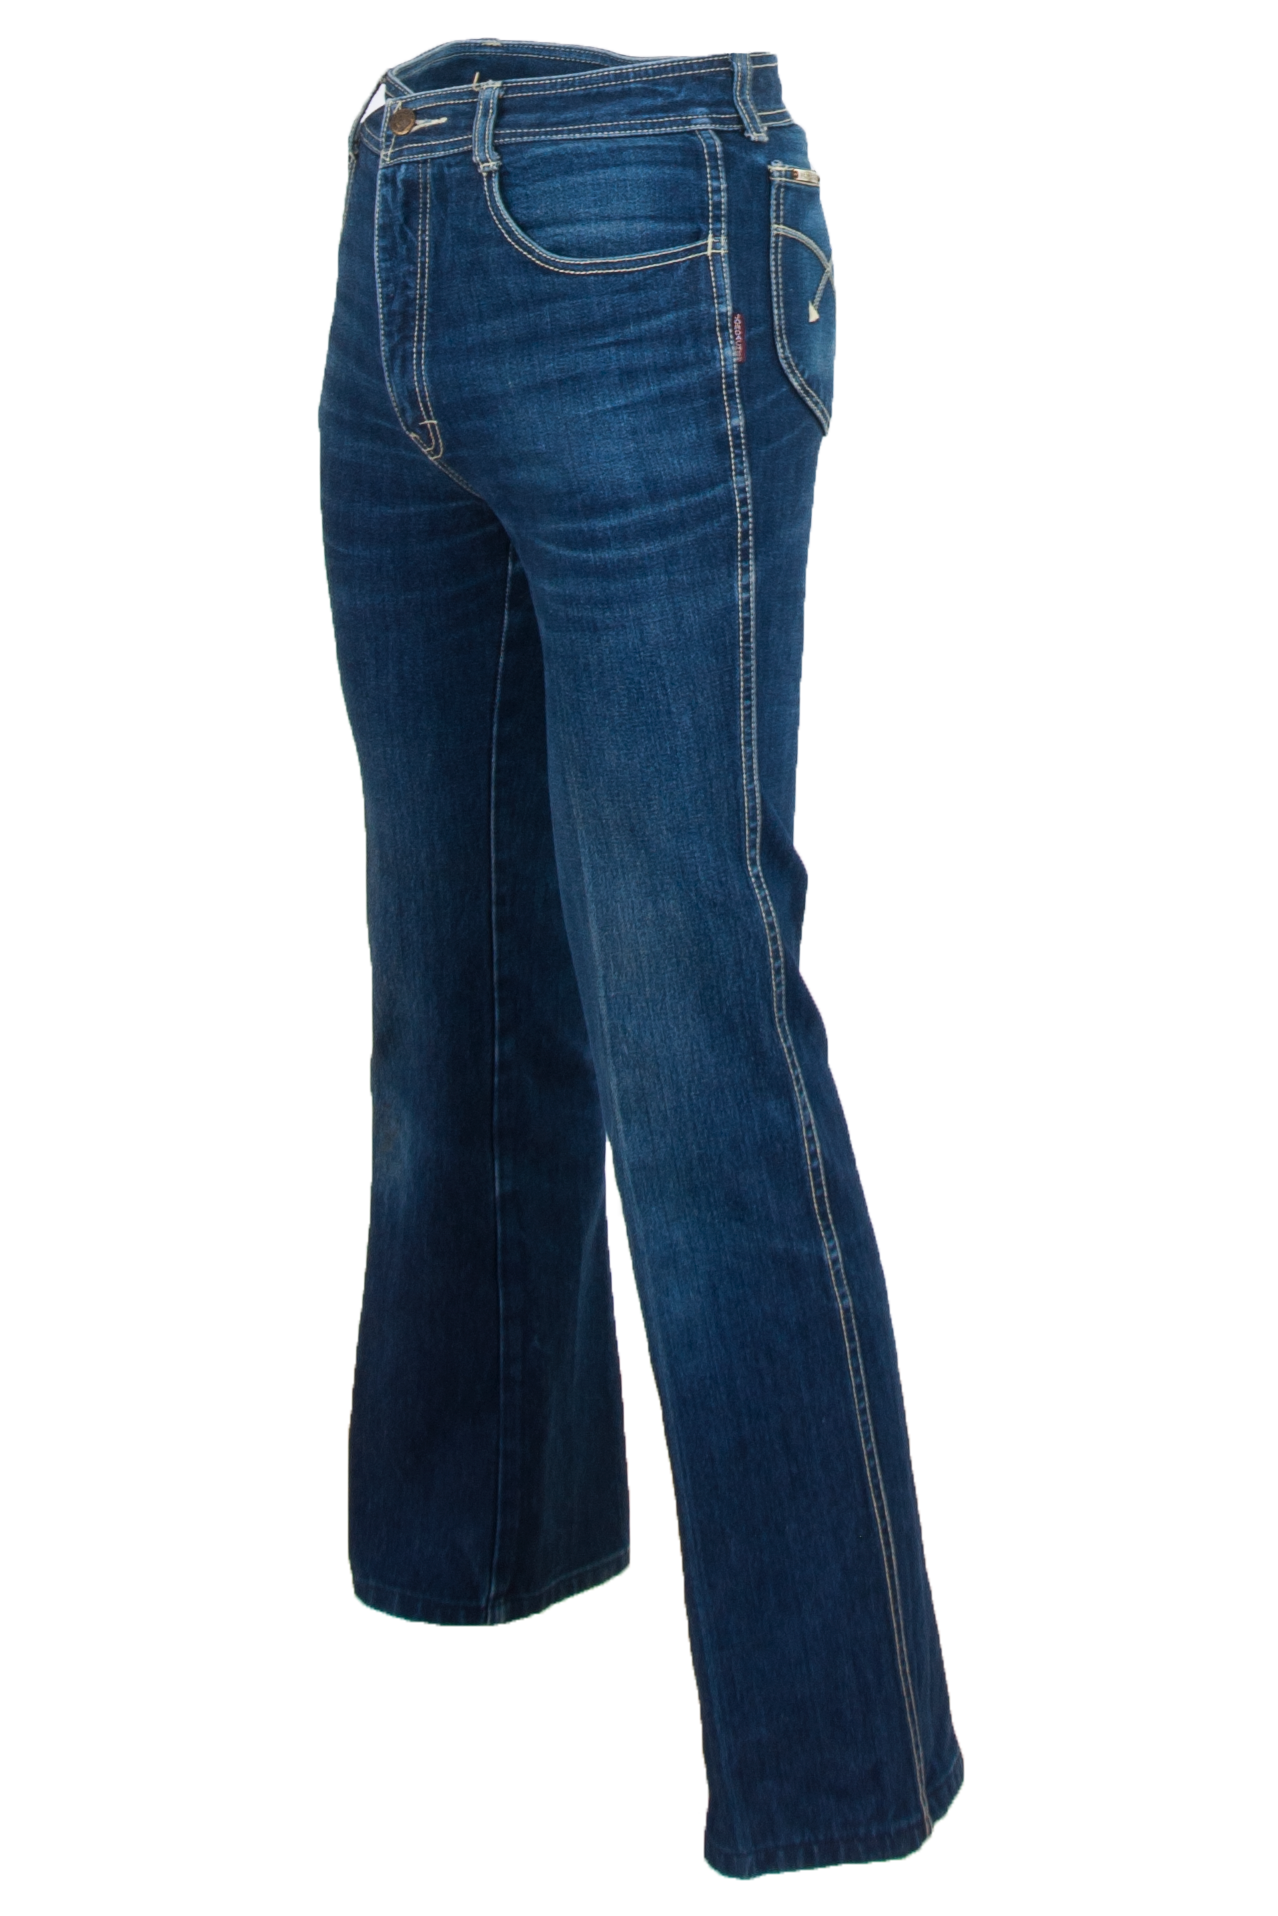 vintage blue jordache jeans with flared leg opening